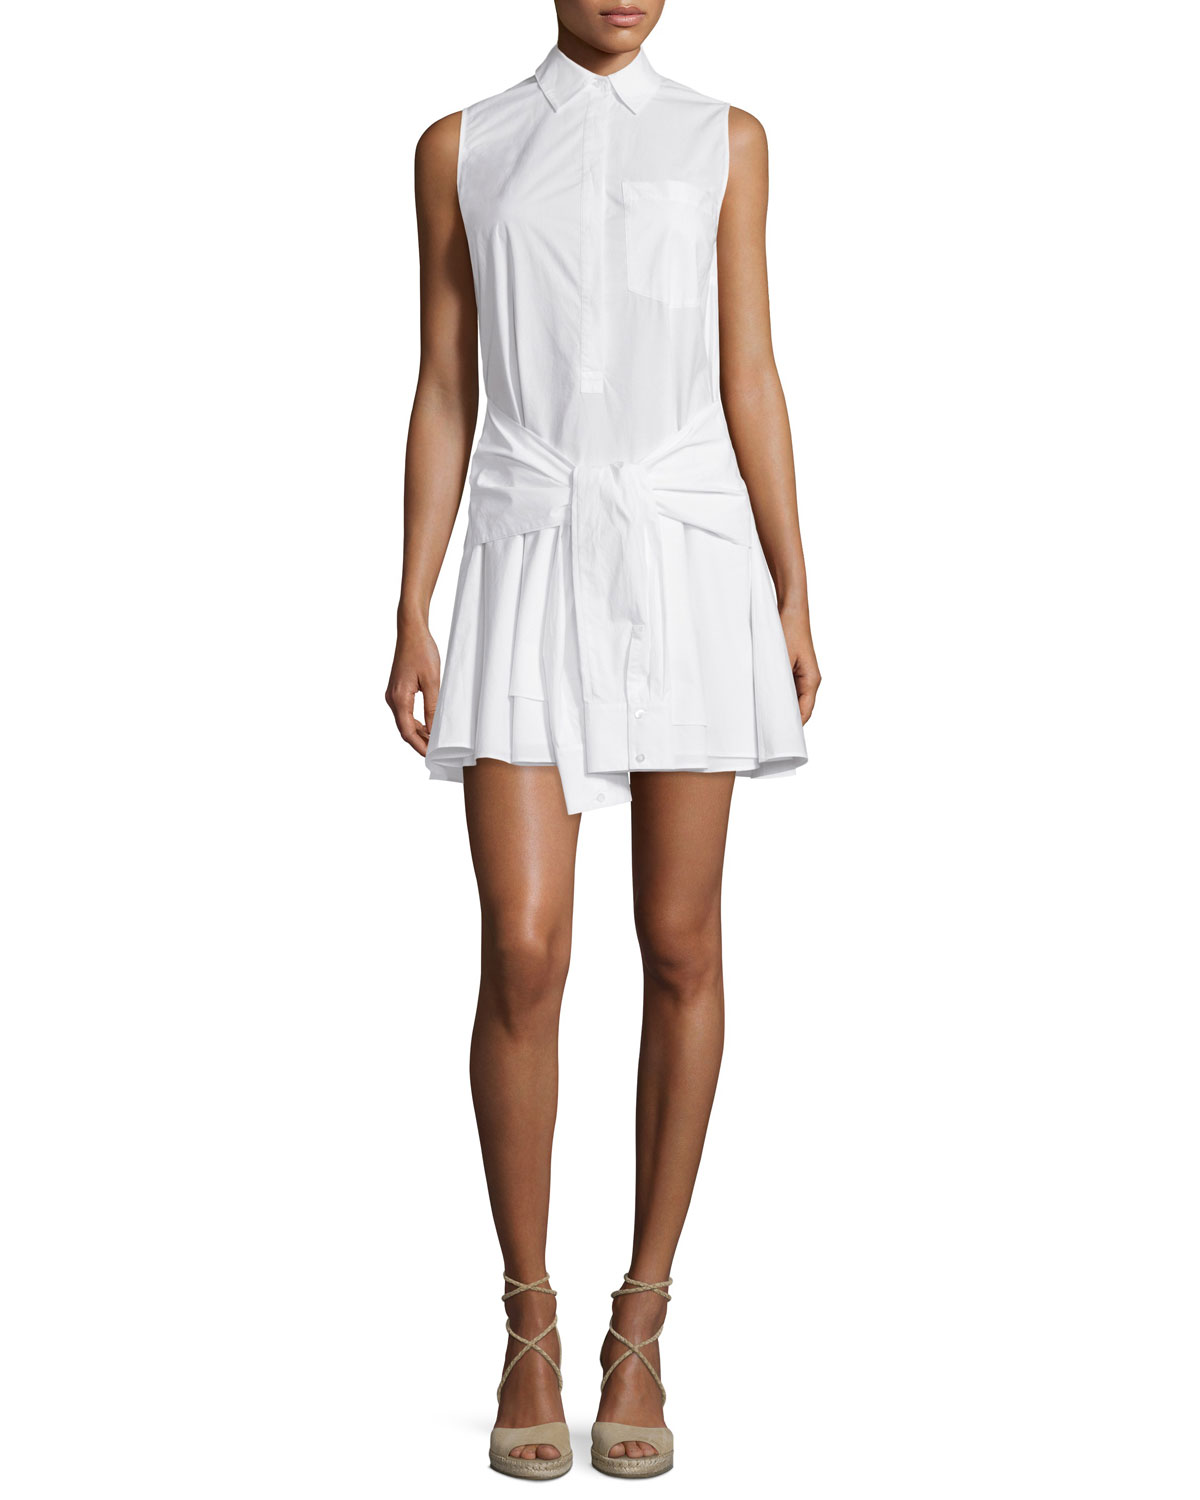 516f0f7485ec78 Derek Lam 10 Crosby Sleeveless Tie-Waist Poplin Shirtdress